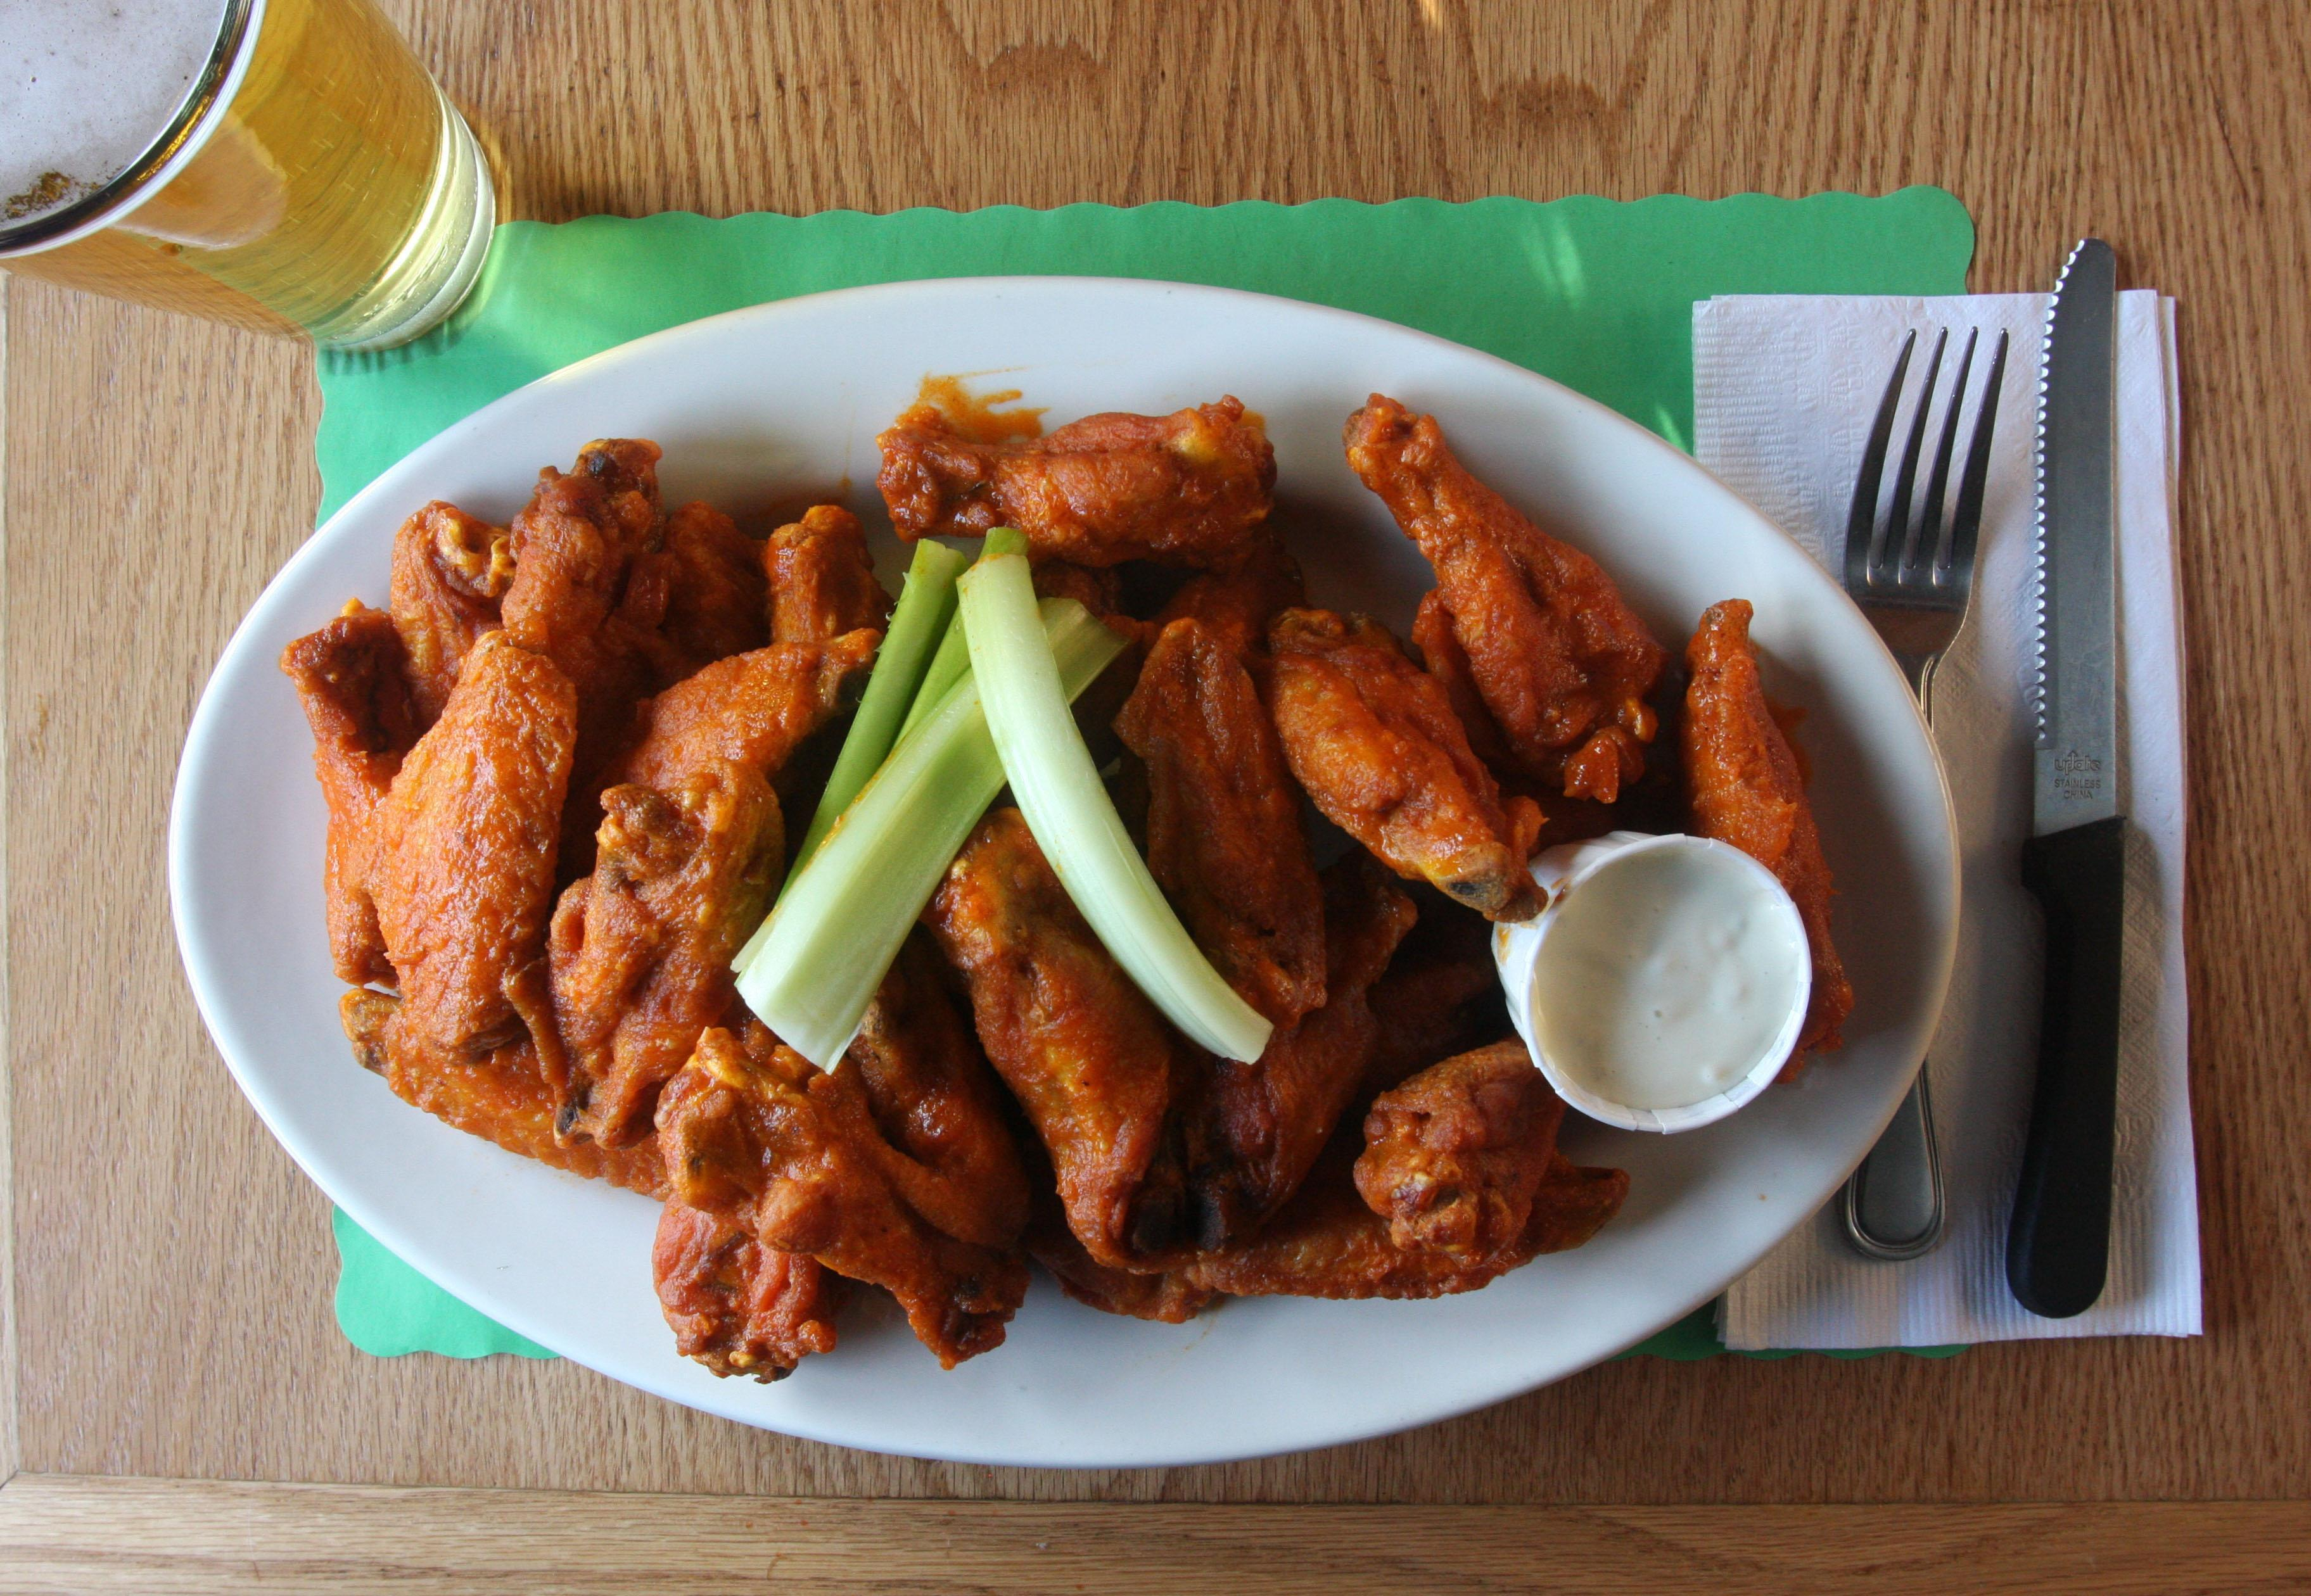 Chicken wings at The Candlelight Inn in Scarsdale.